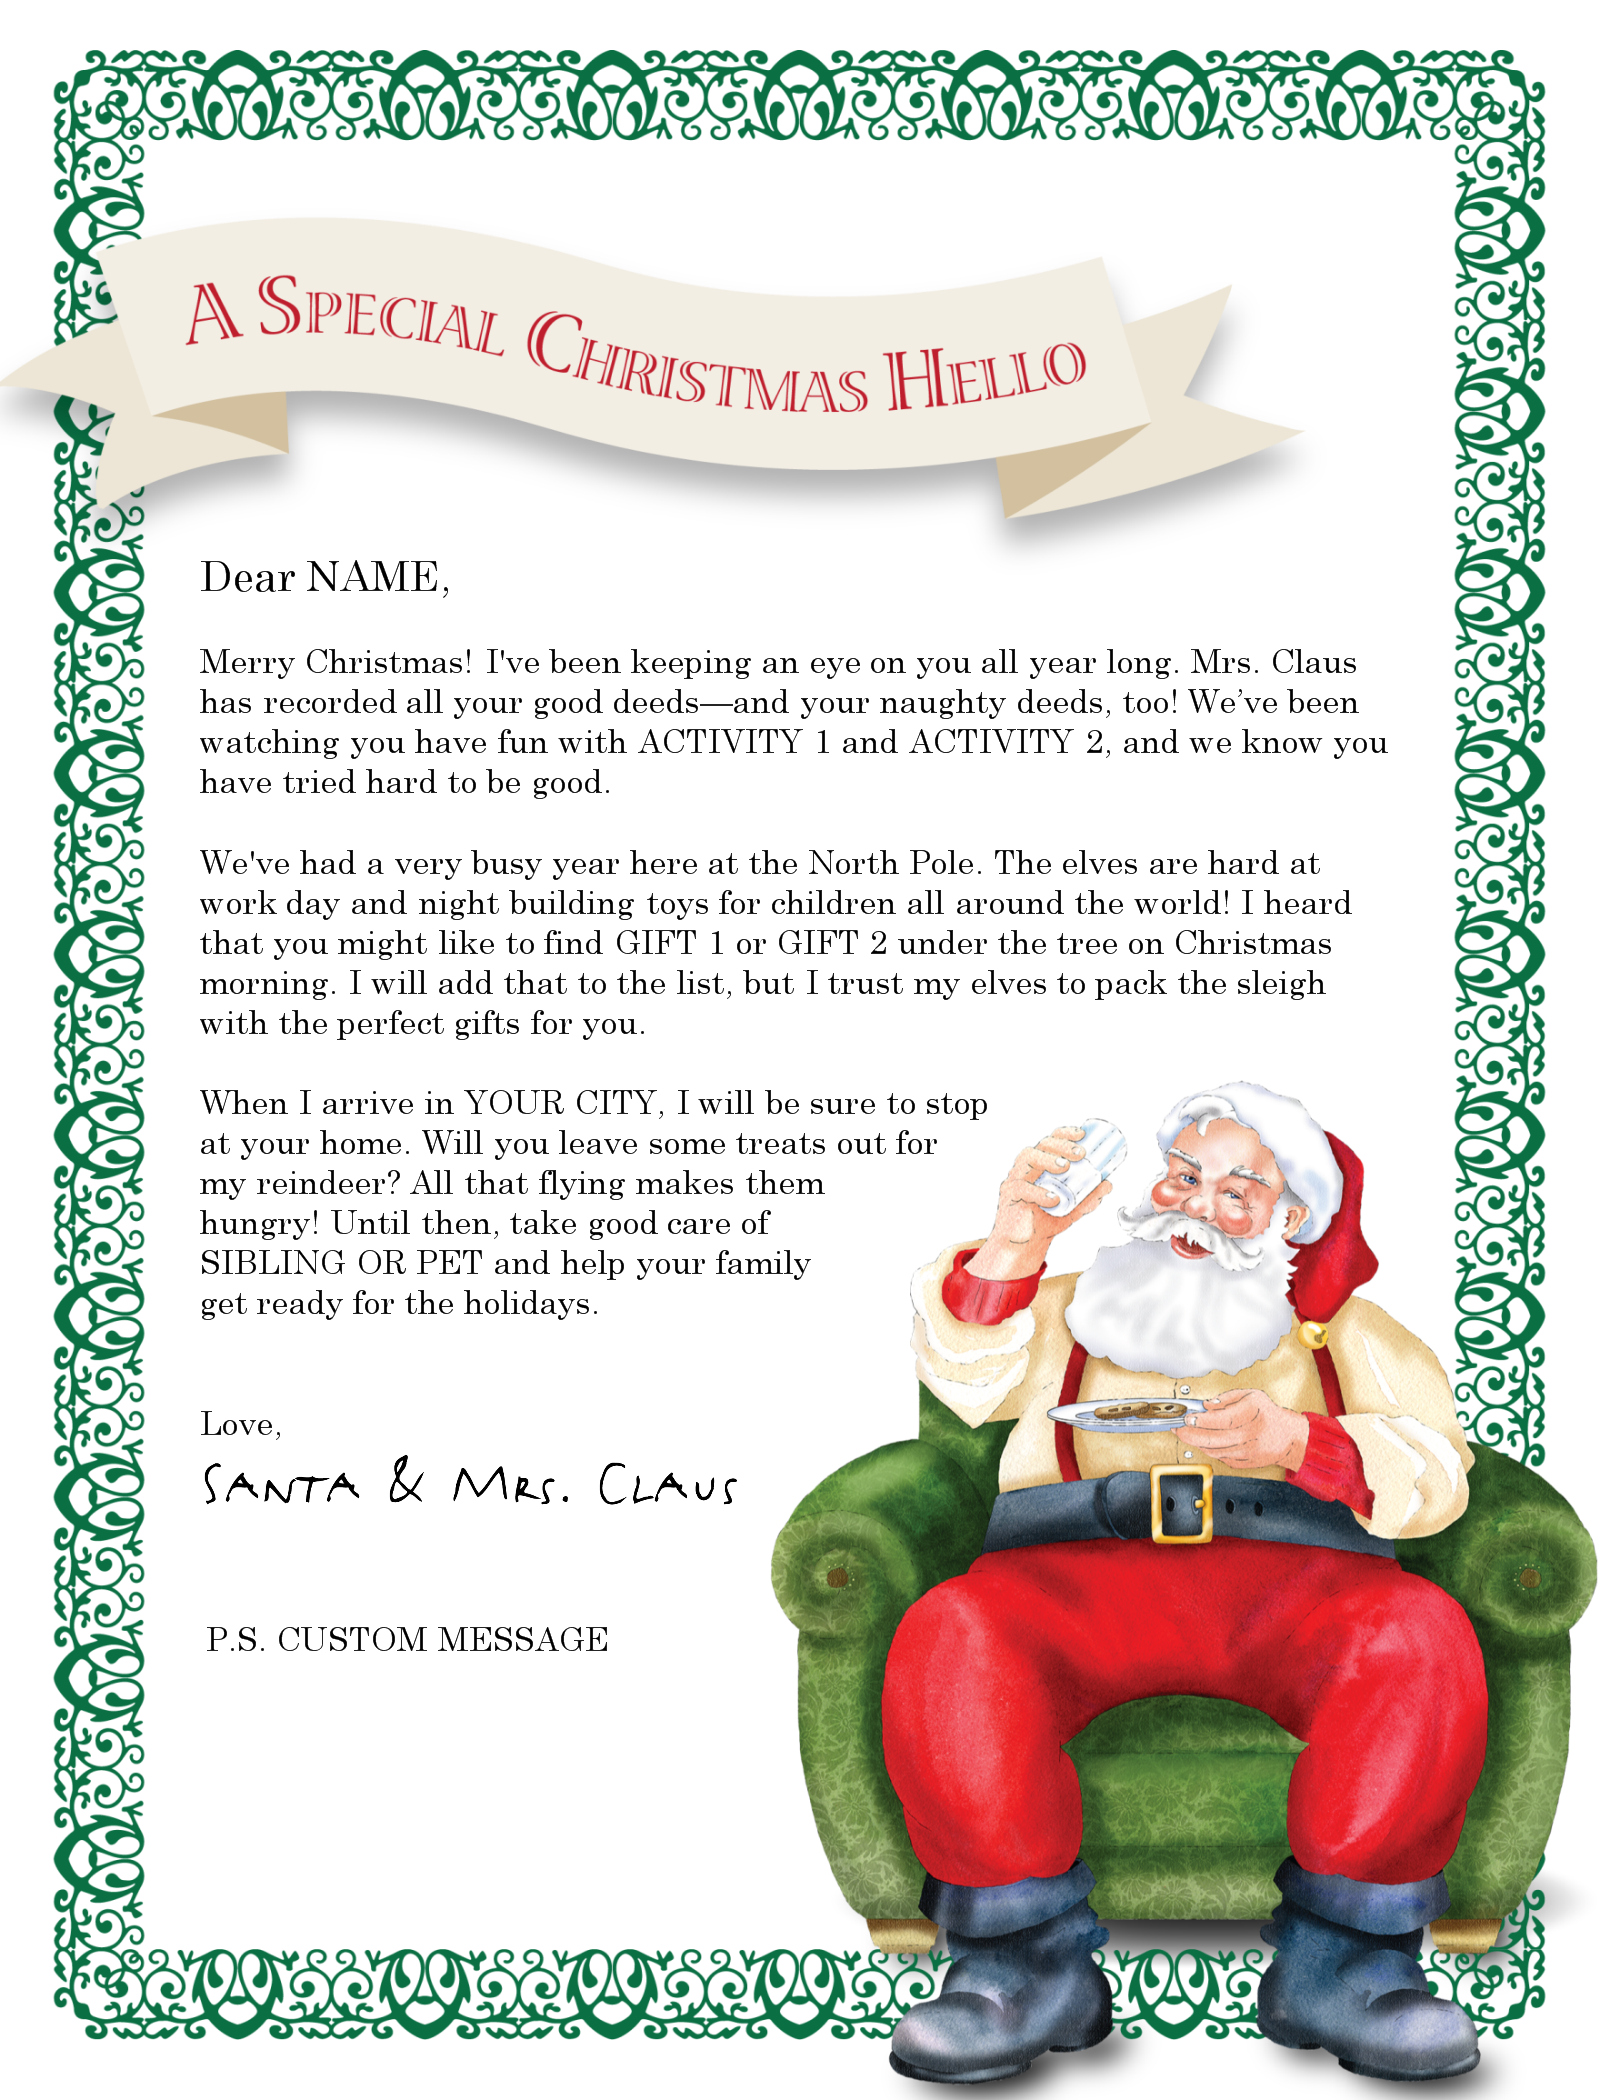 Letter From Santa Templates Free TRY IT FREE! login